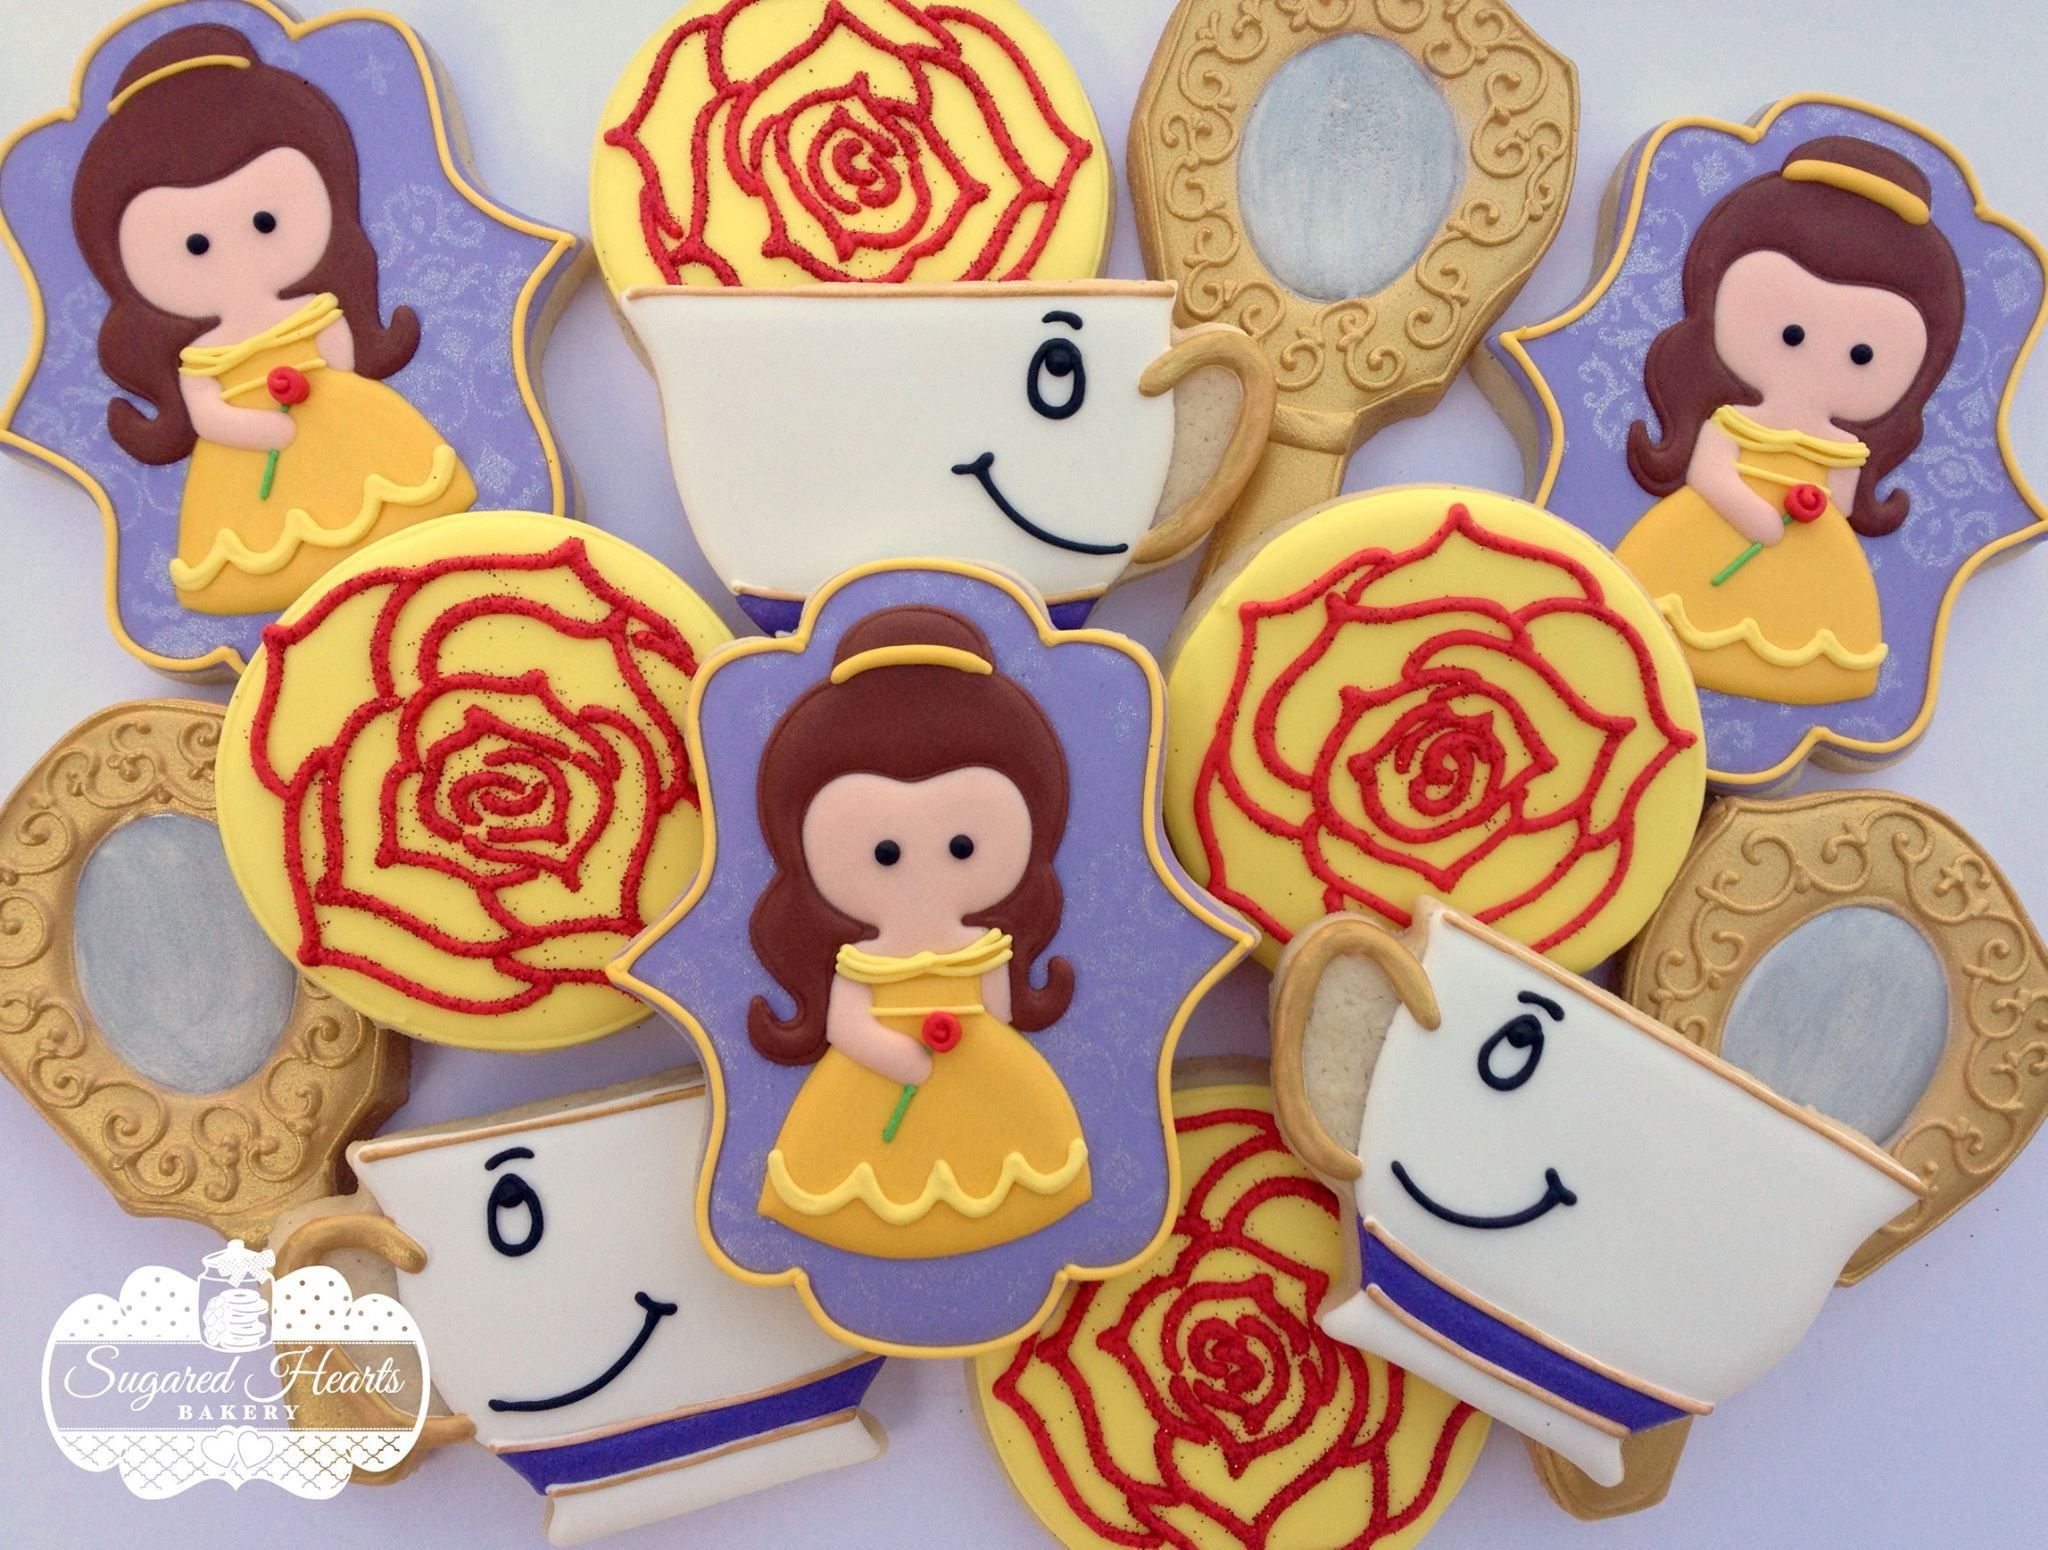 Galletas Decoradas De Princesas Sugared Hearts Bakery On Facebook Decorated Sugar